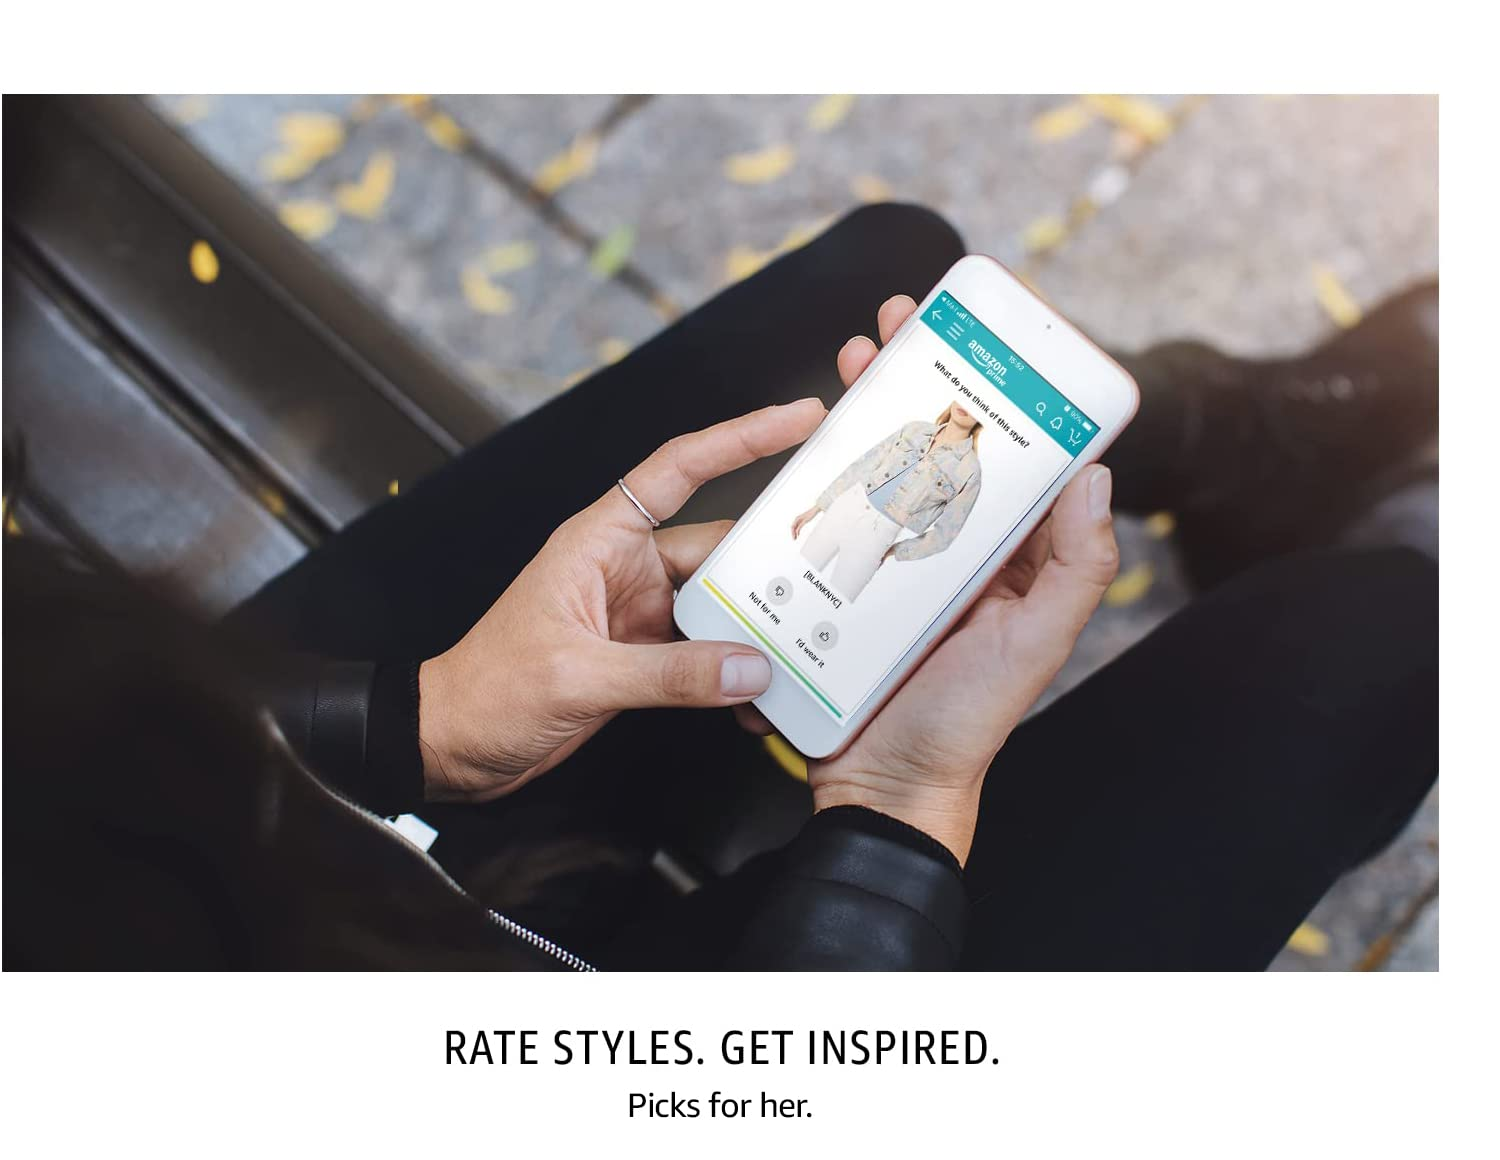 Rate Styles. Get Inspired. Picks for her.